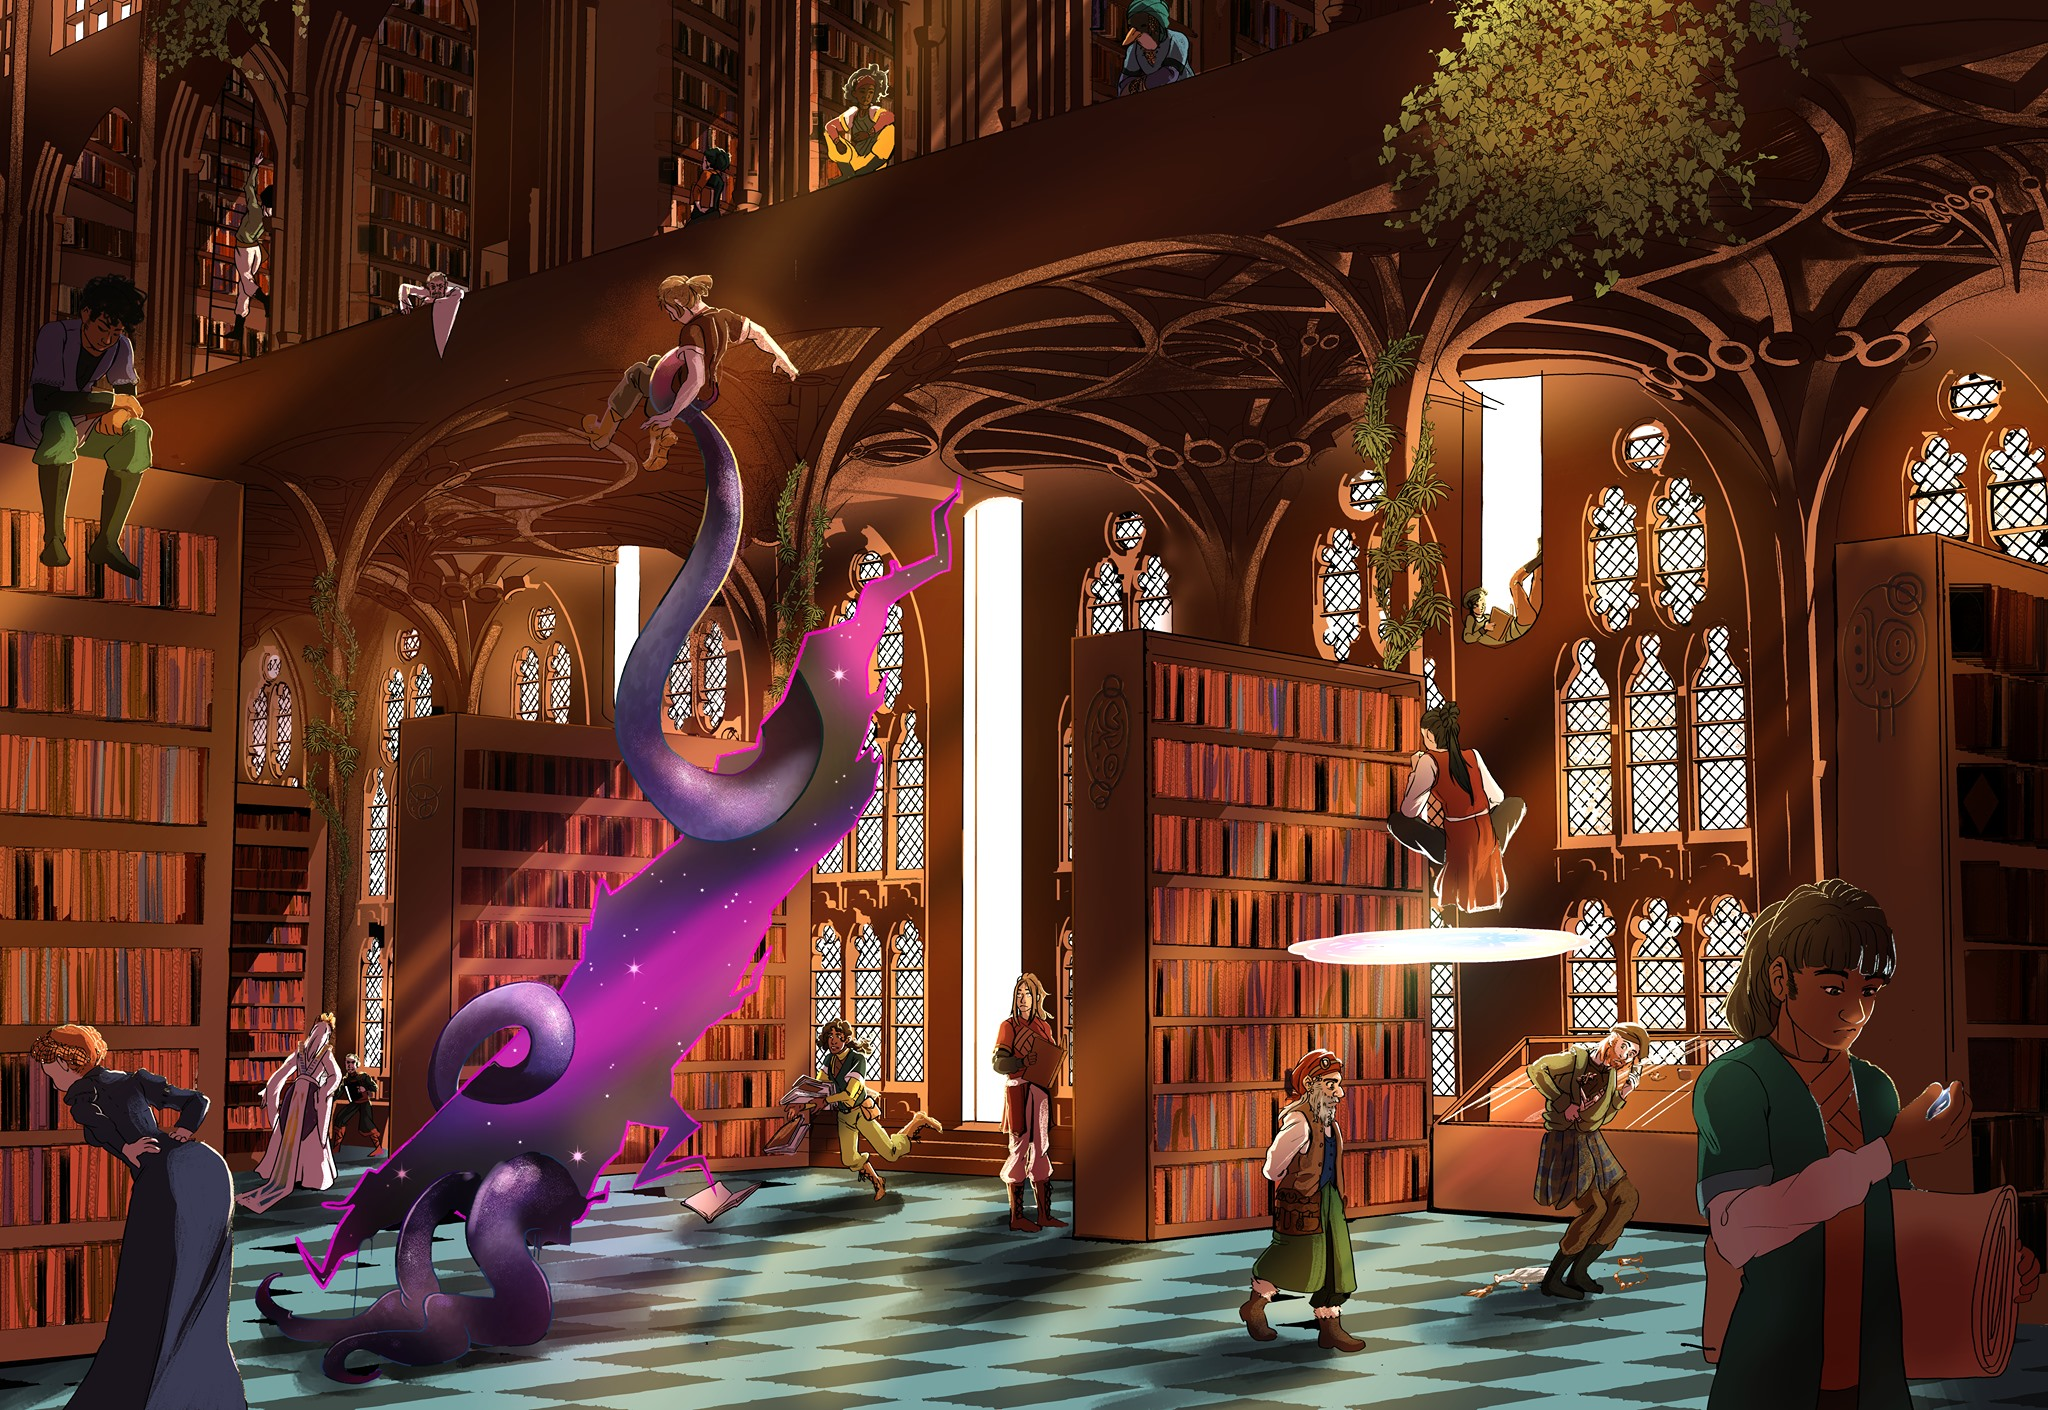 The Royal College Library in Kingdom of Seasons (Artwork by:  Kanna Clausen )